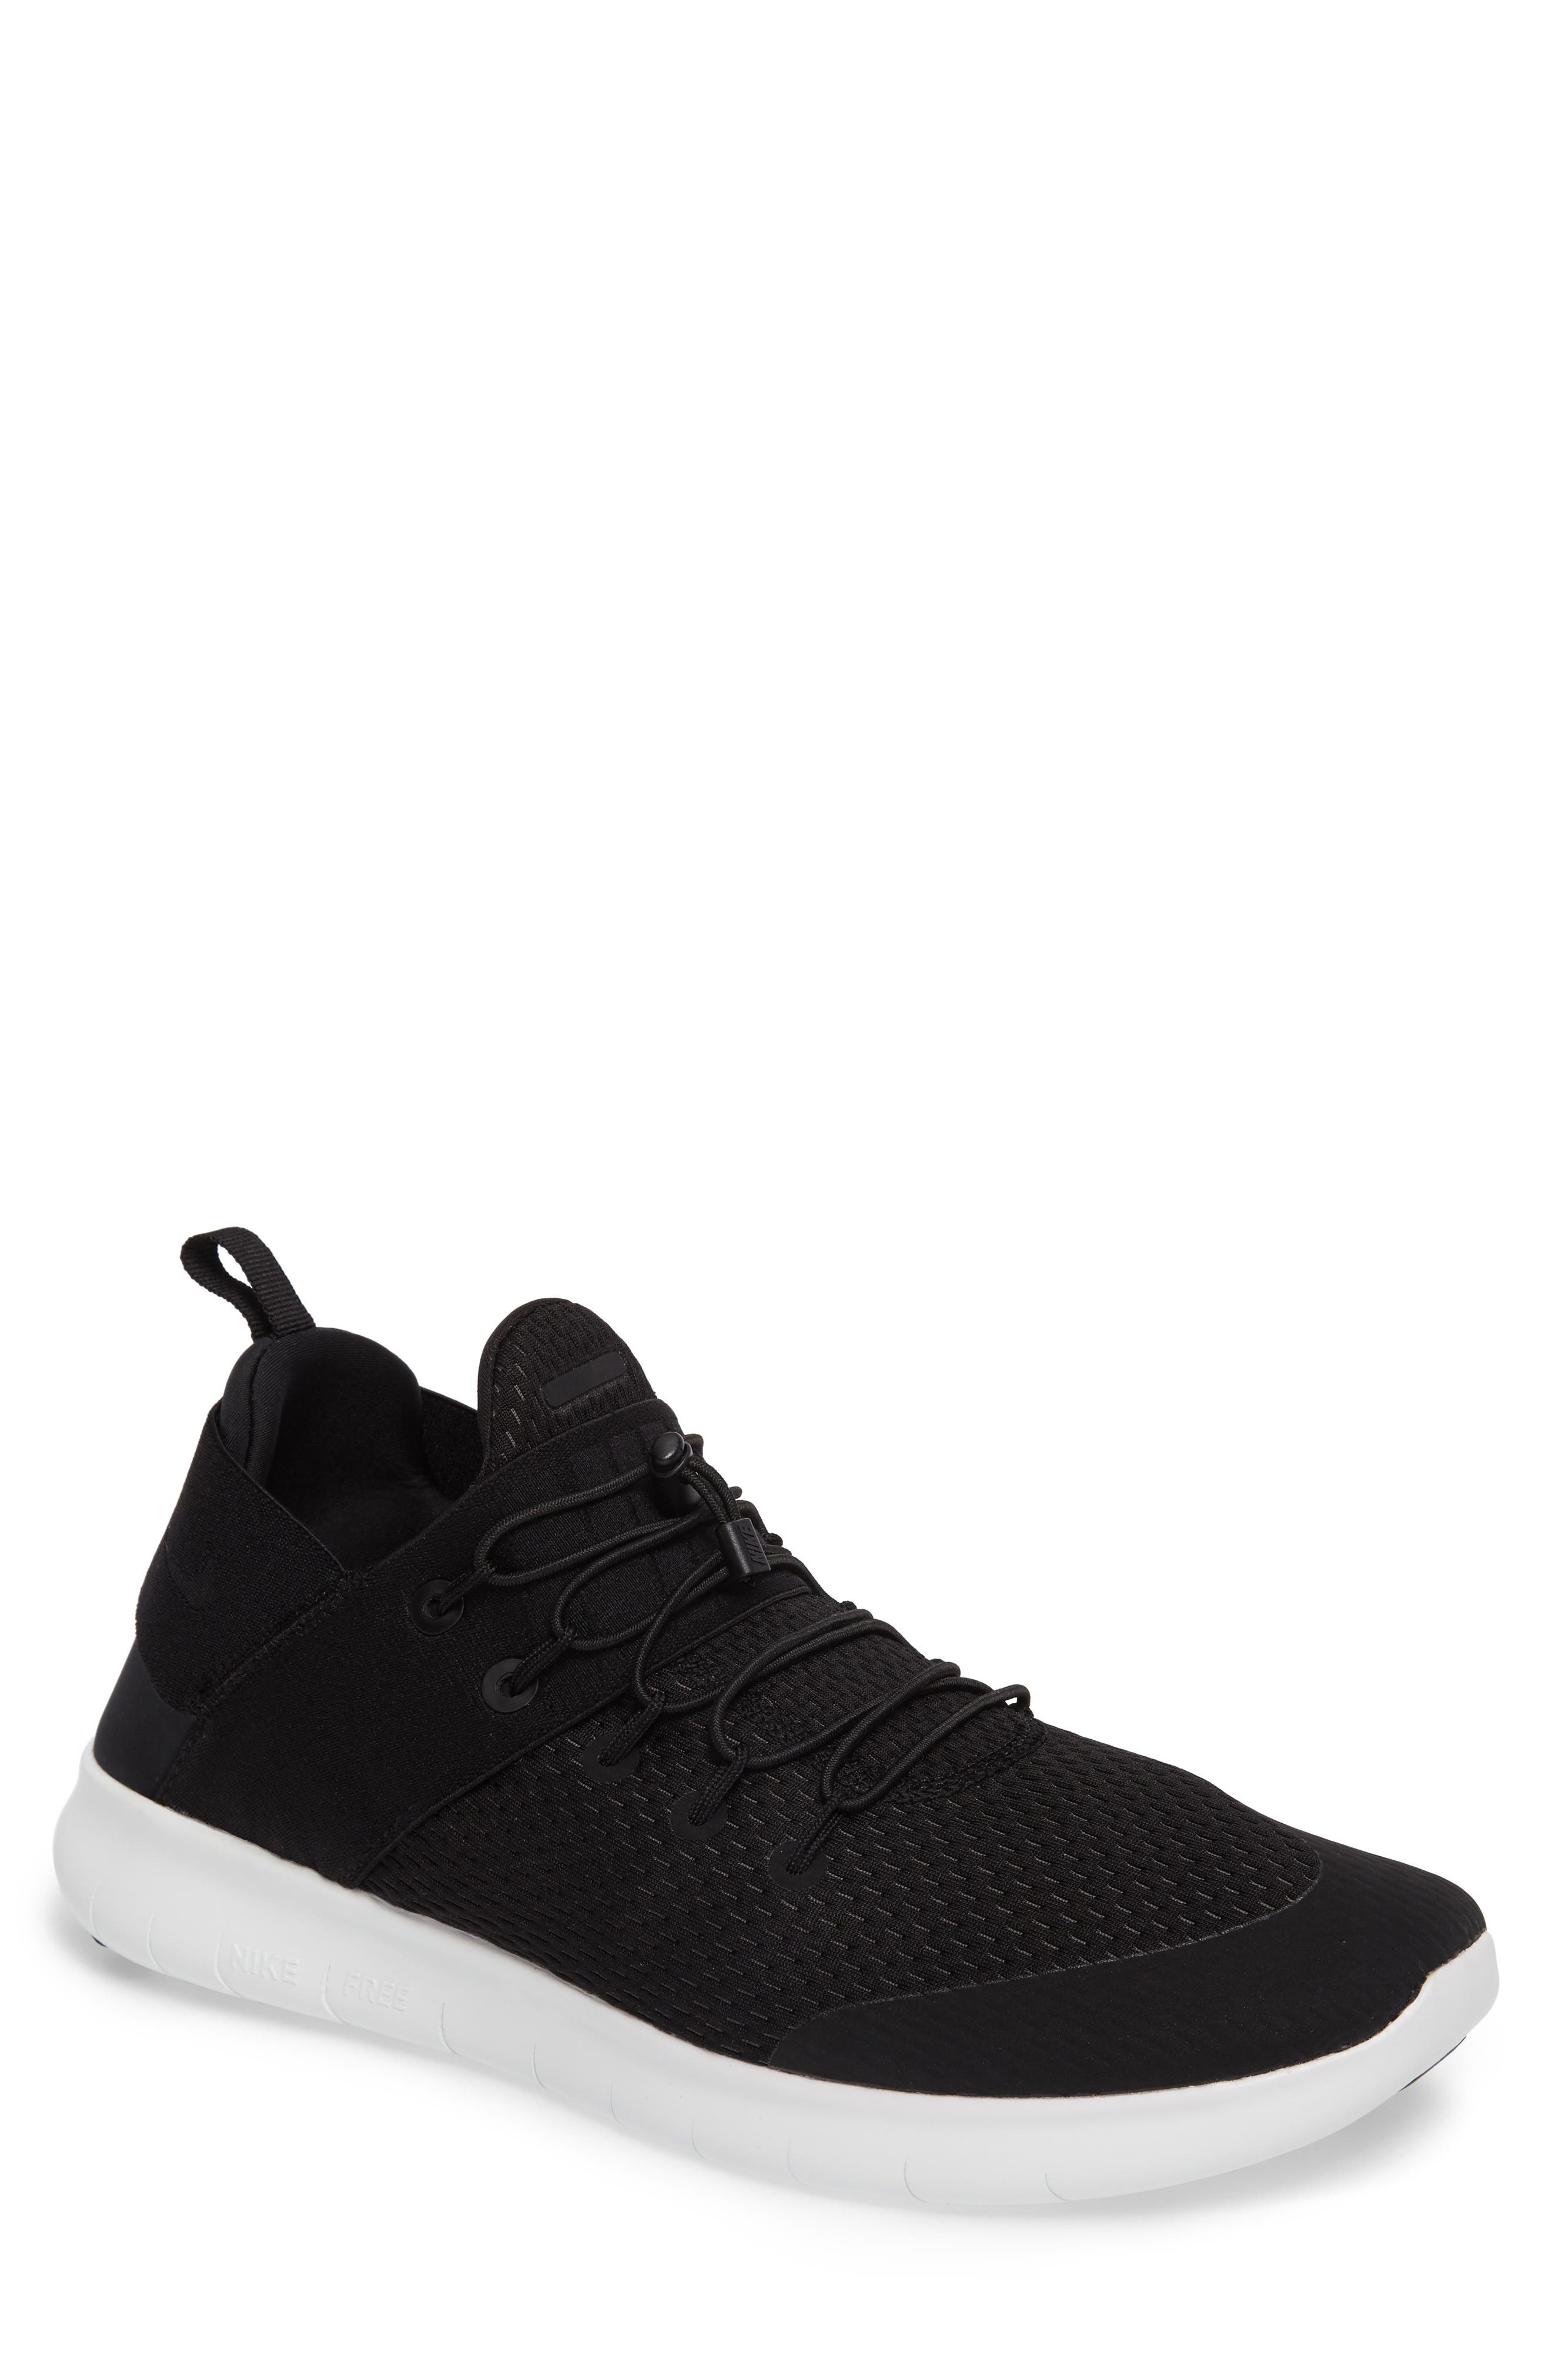 Free RN CMTR 2 Running Shoe,                         Main,                         color, BLACK/ ANTHRACITE/ OFF WHITE